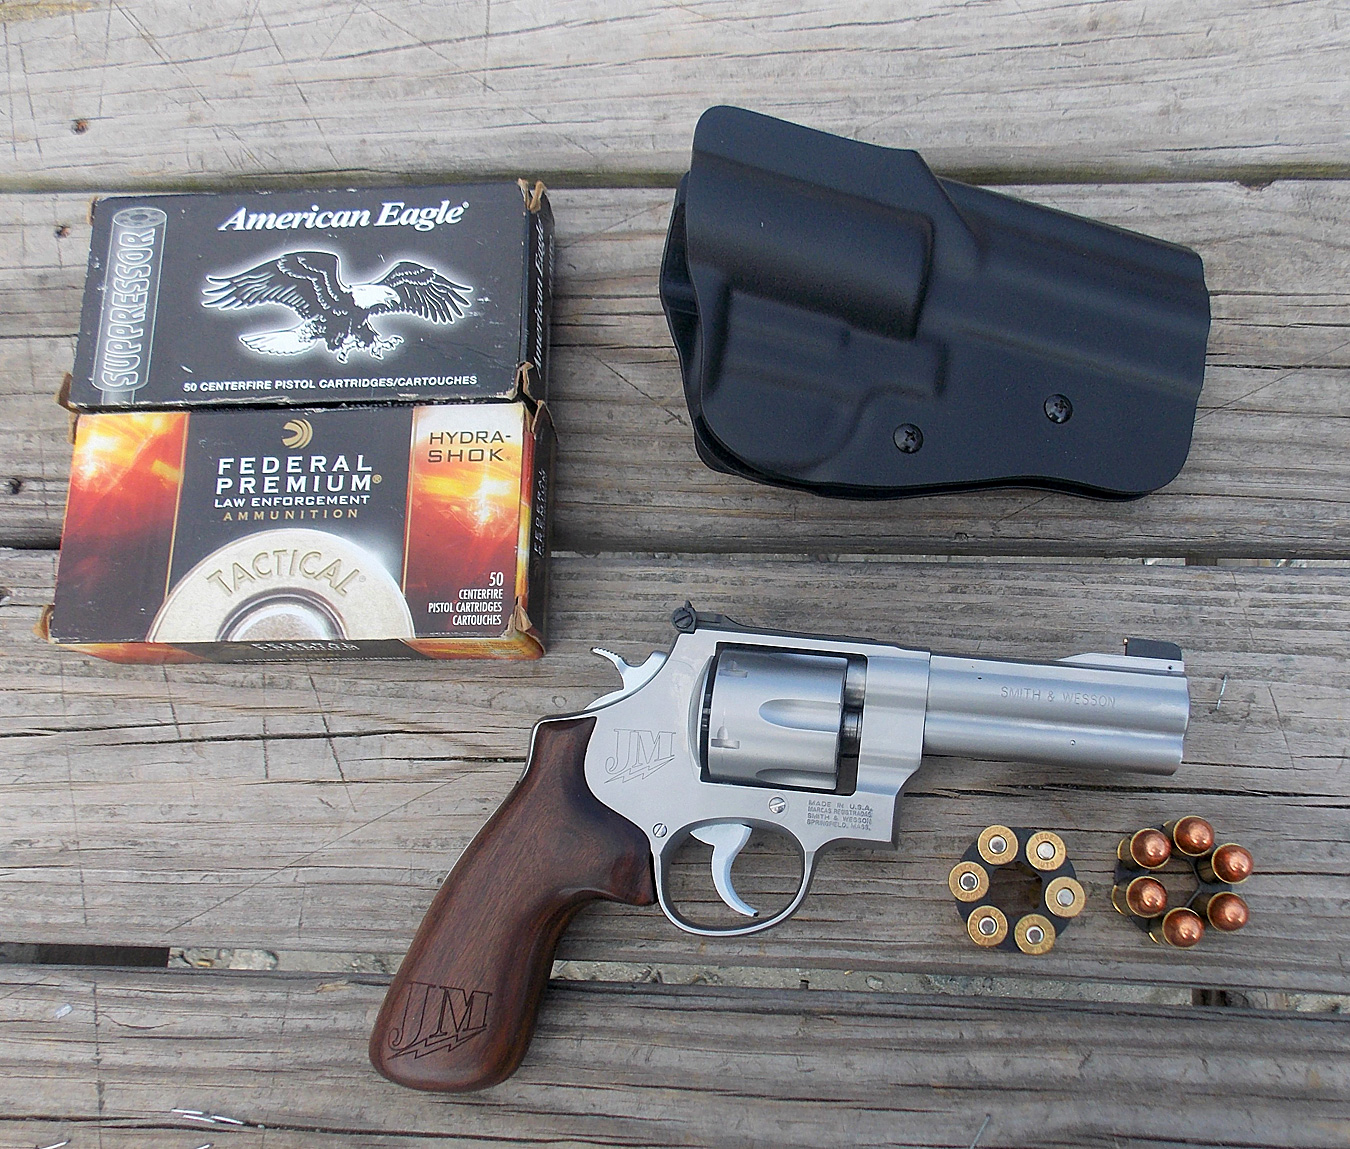 Smith and Wesson Model 625 JM revolver with ammunition and a holster